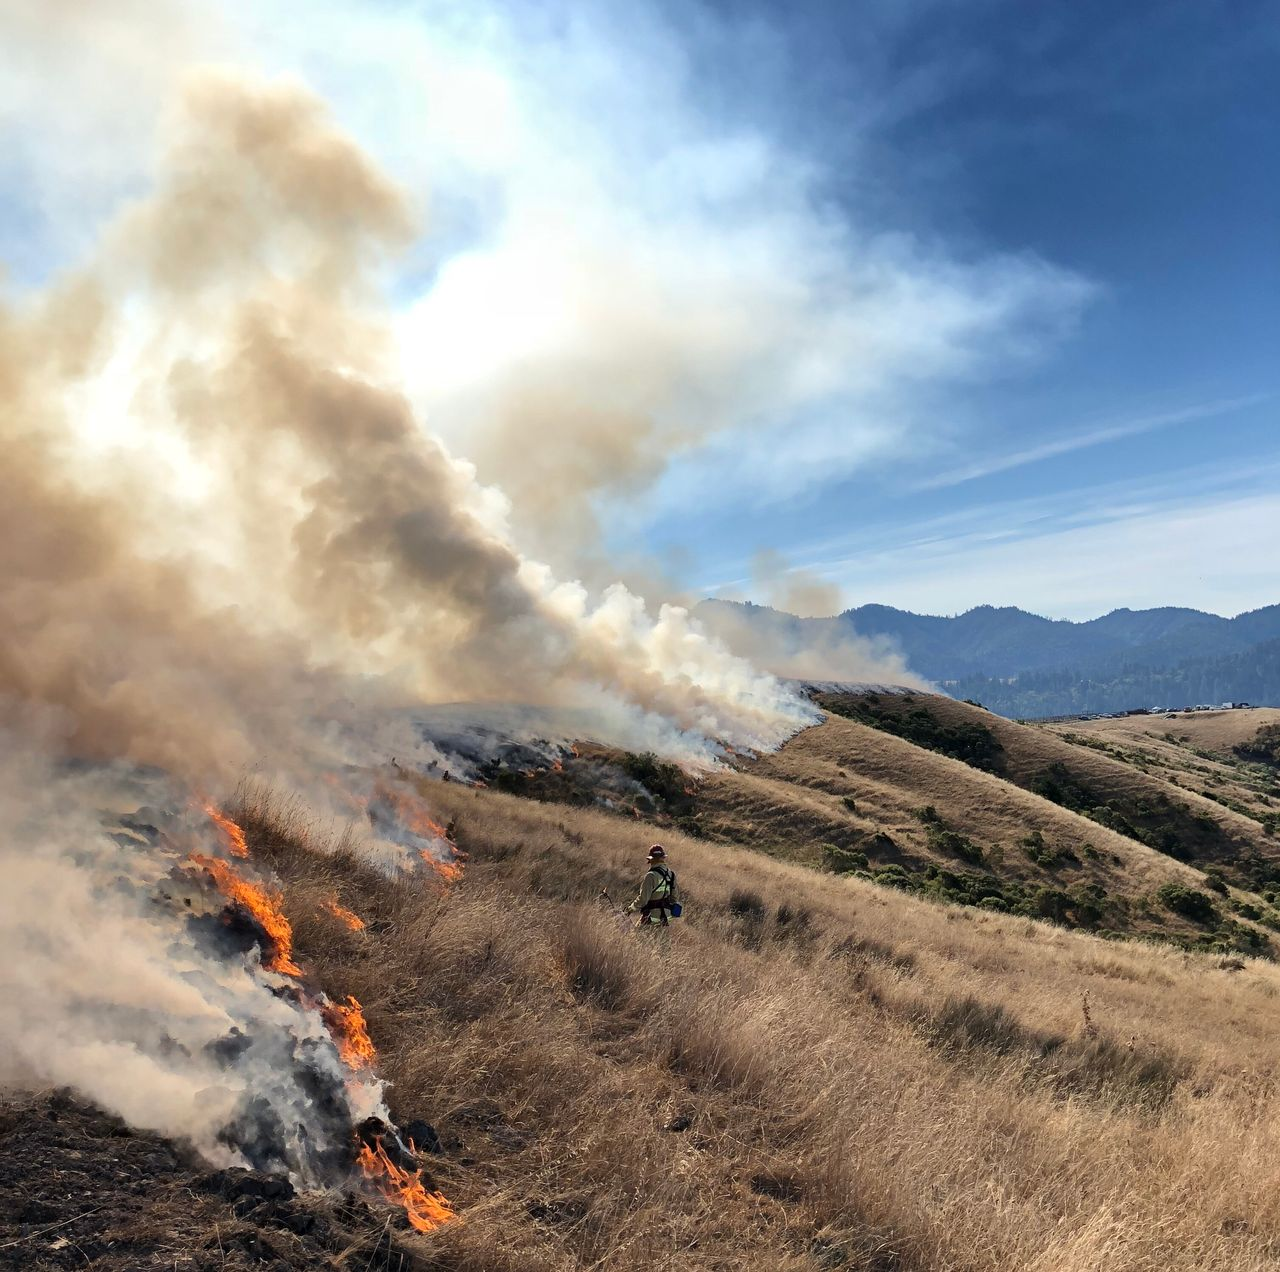 Ranchers in Humboldt County are using prescribed fire to improve coastal rangeland.